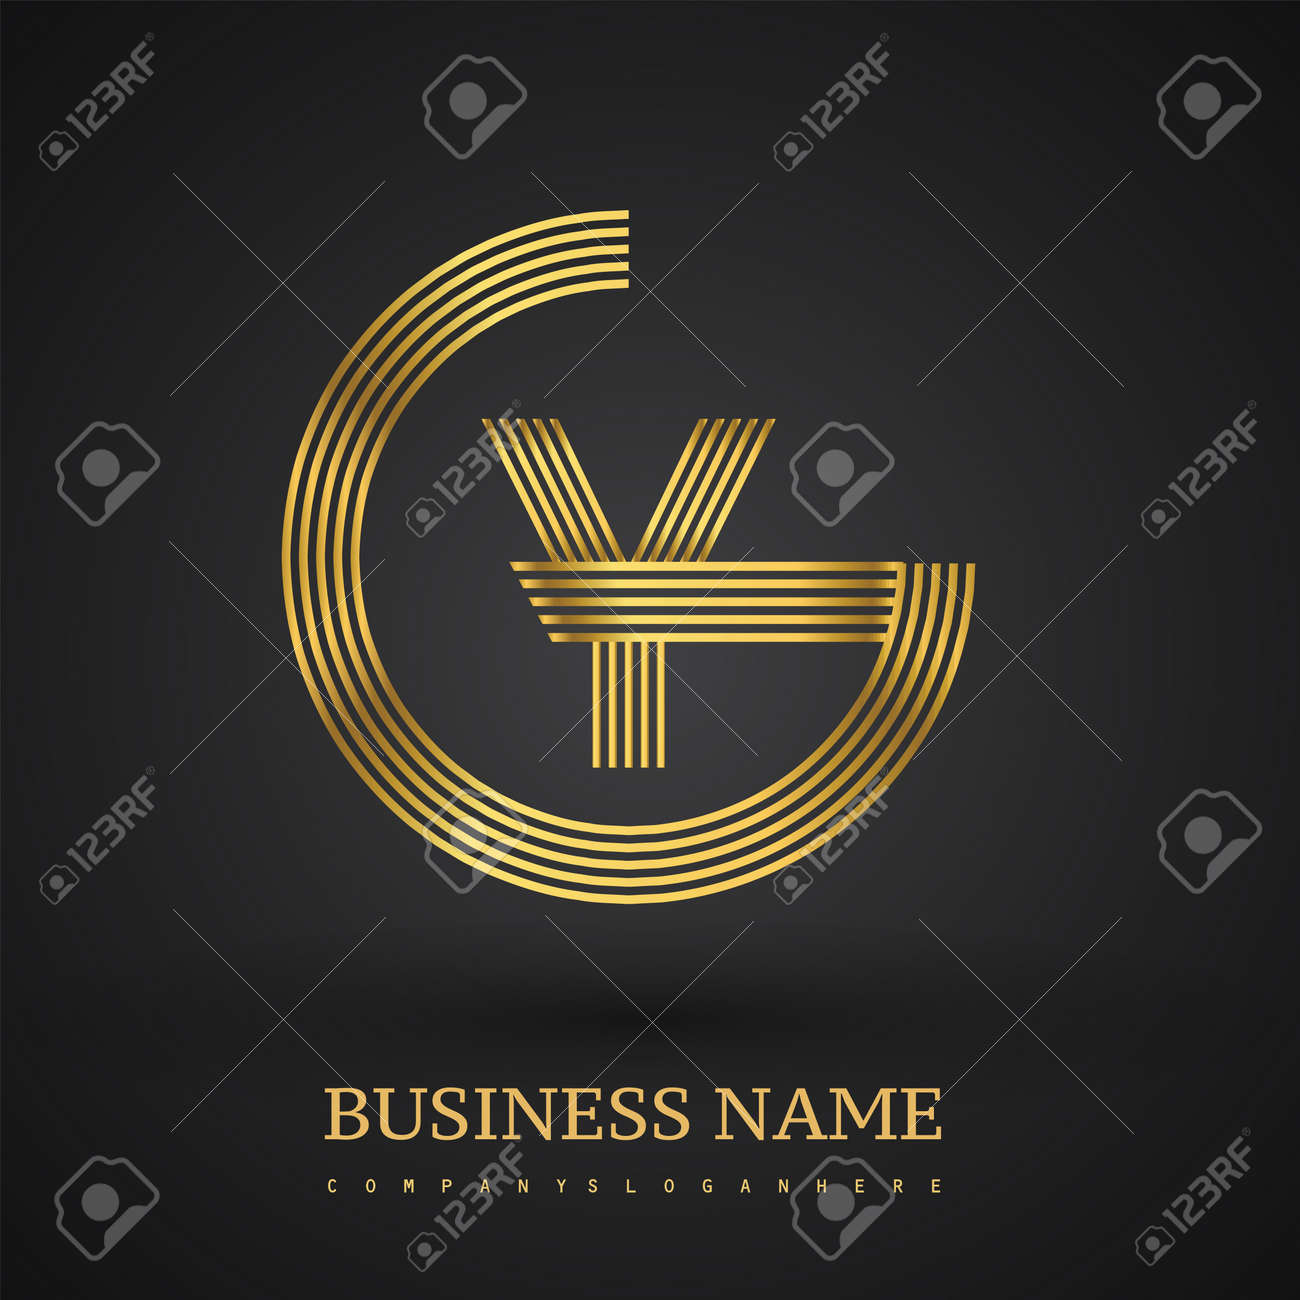 Letter GY linked logo design circle G shape. Elegant golden colored, symbol for your business name or company identity. - 159300078